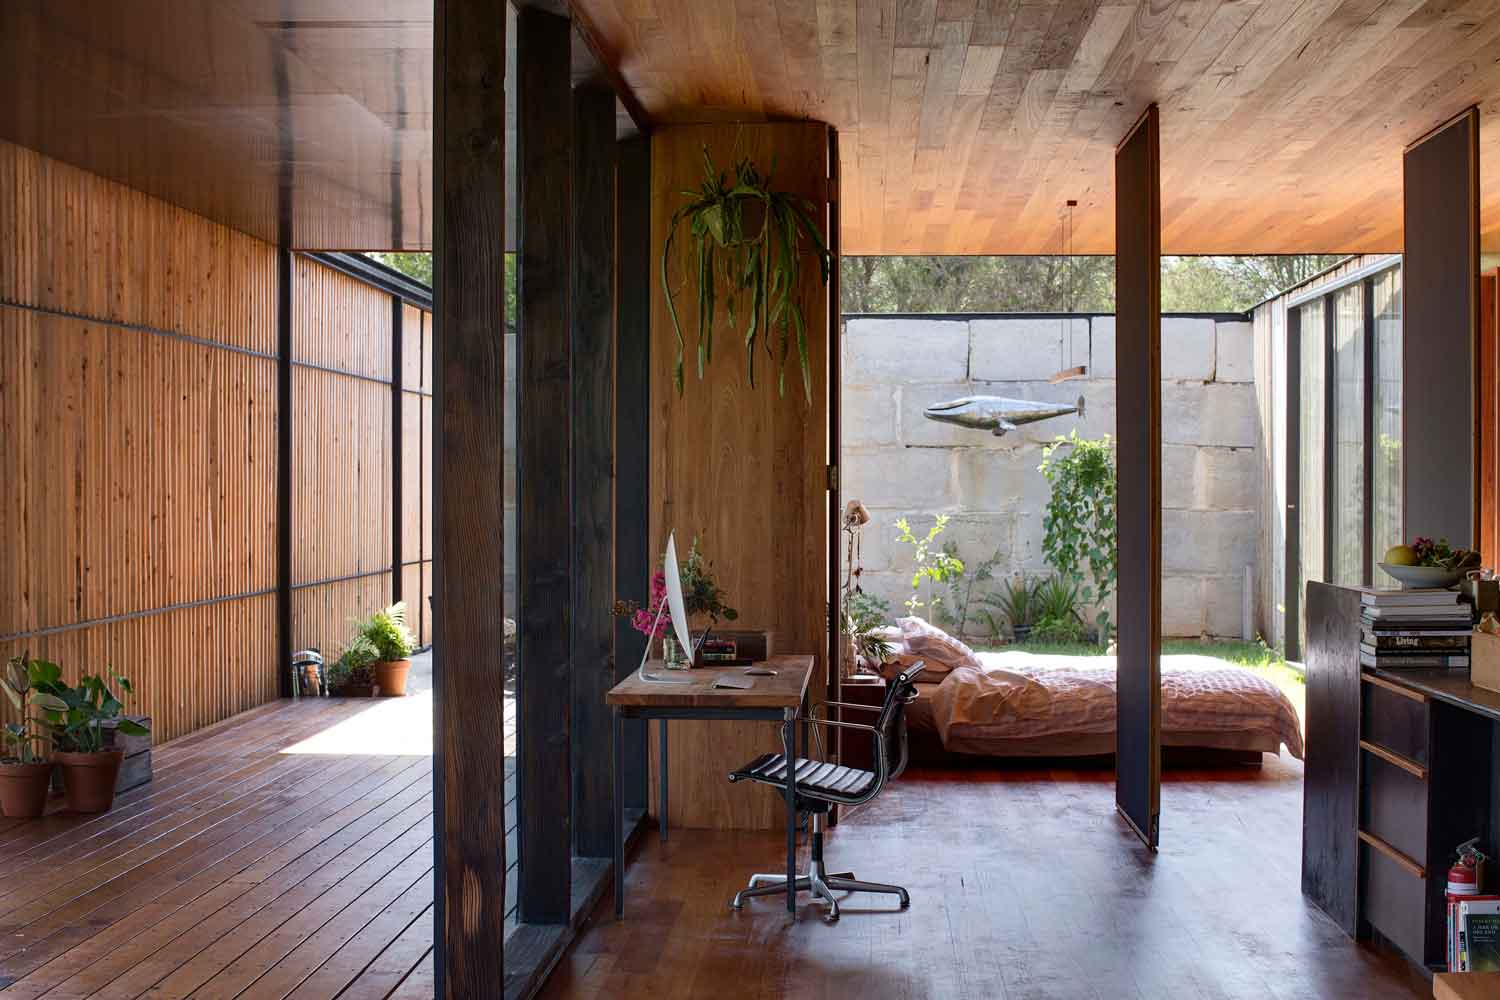 Sawmill House by Archier Studio. Photo by Benjamin Hosking | Yellowtrace